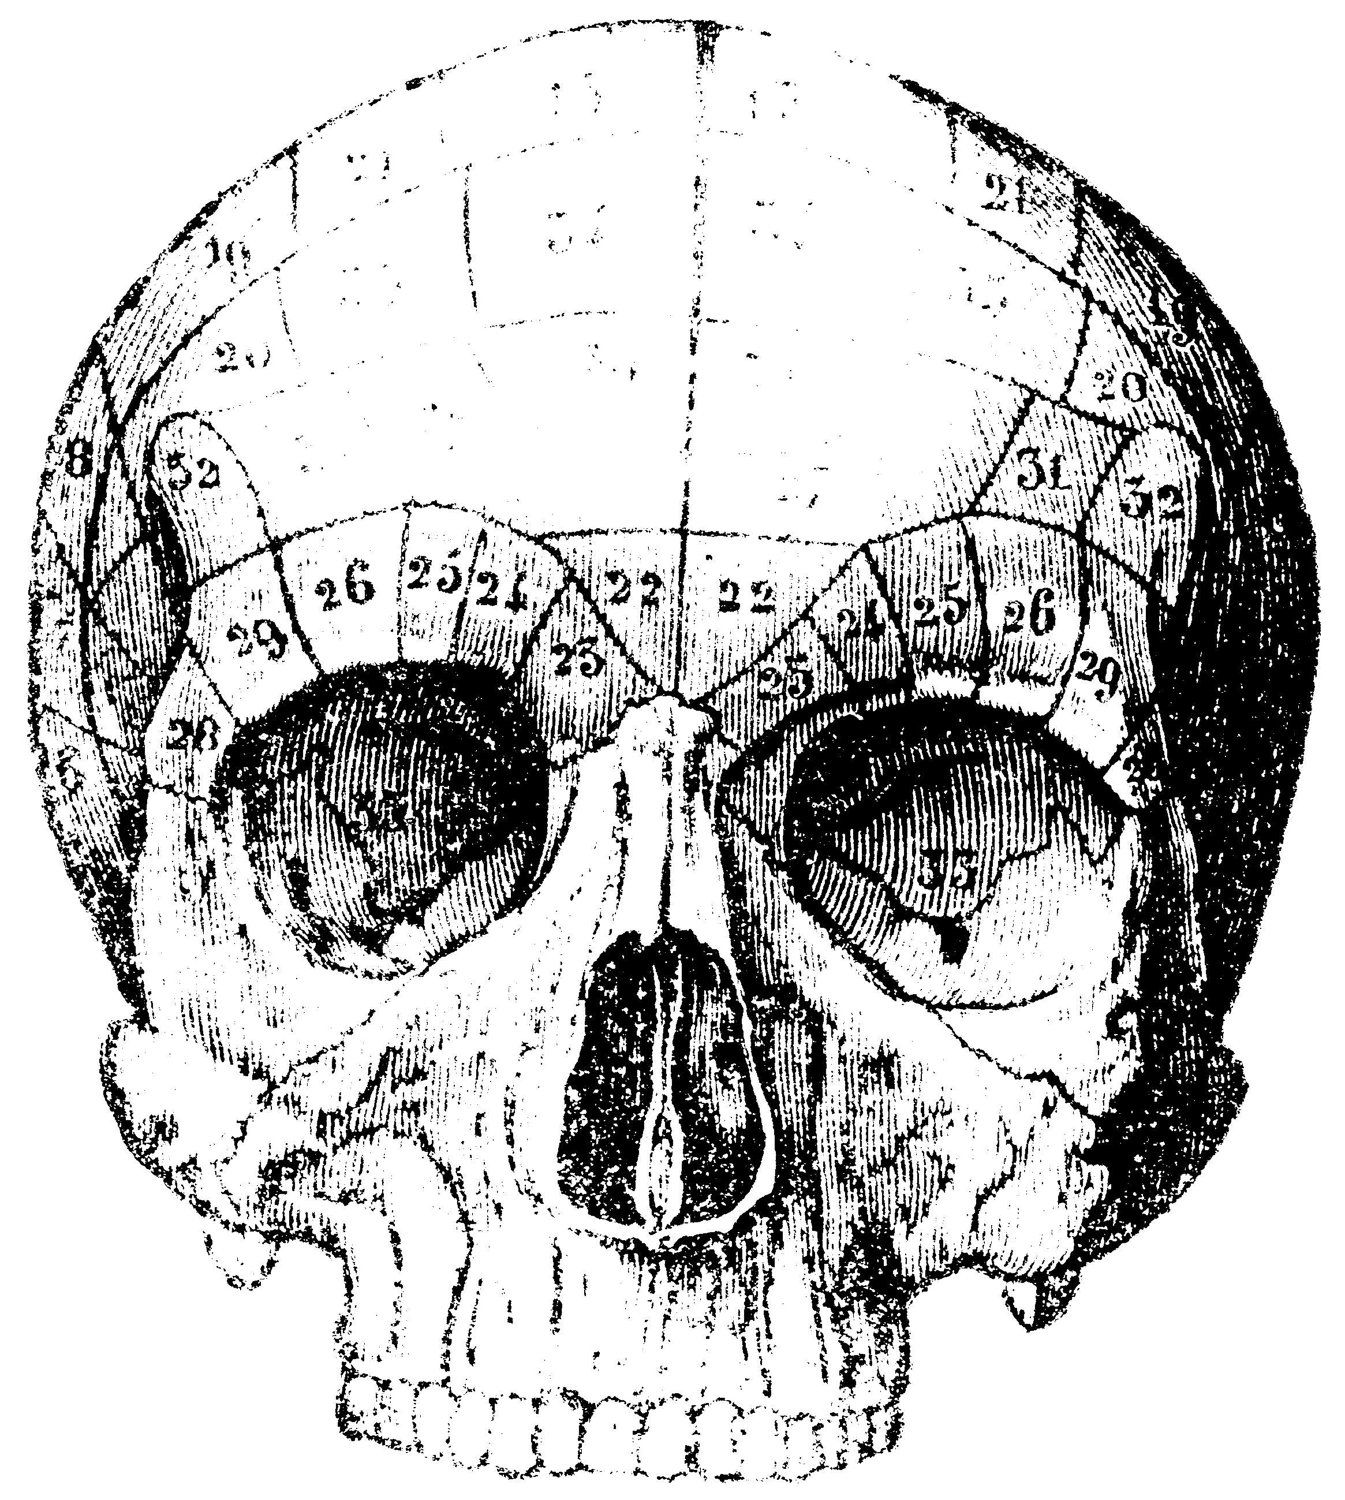 Textbook Skull Illustration